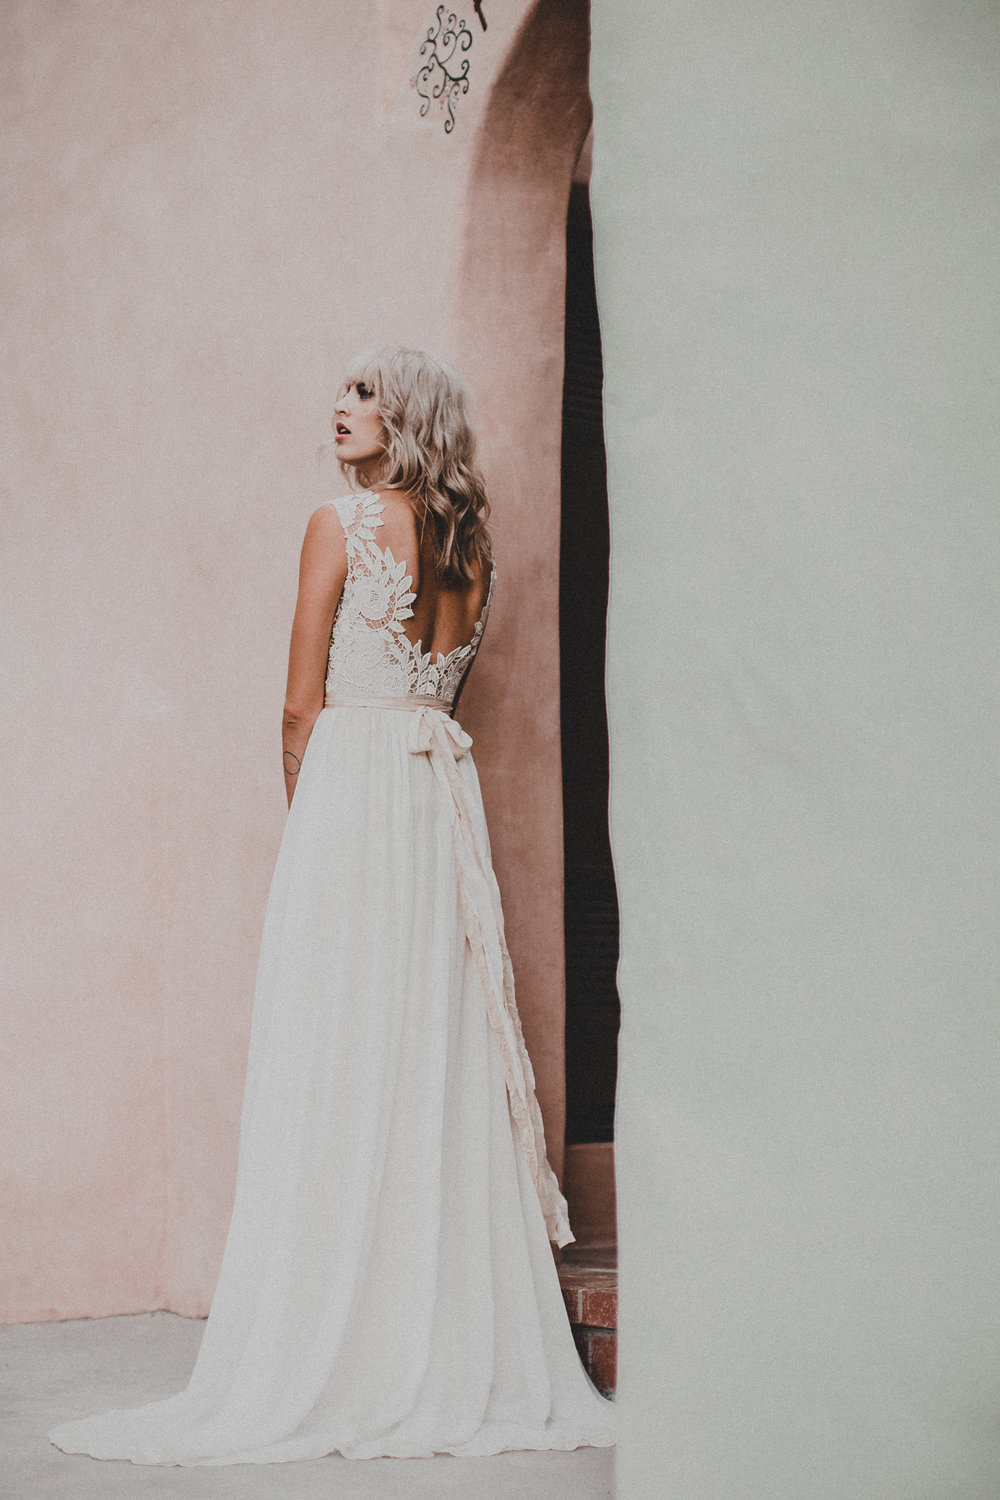 Carly by Chantel Lauren Wedding gown